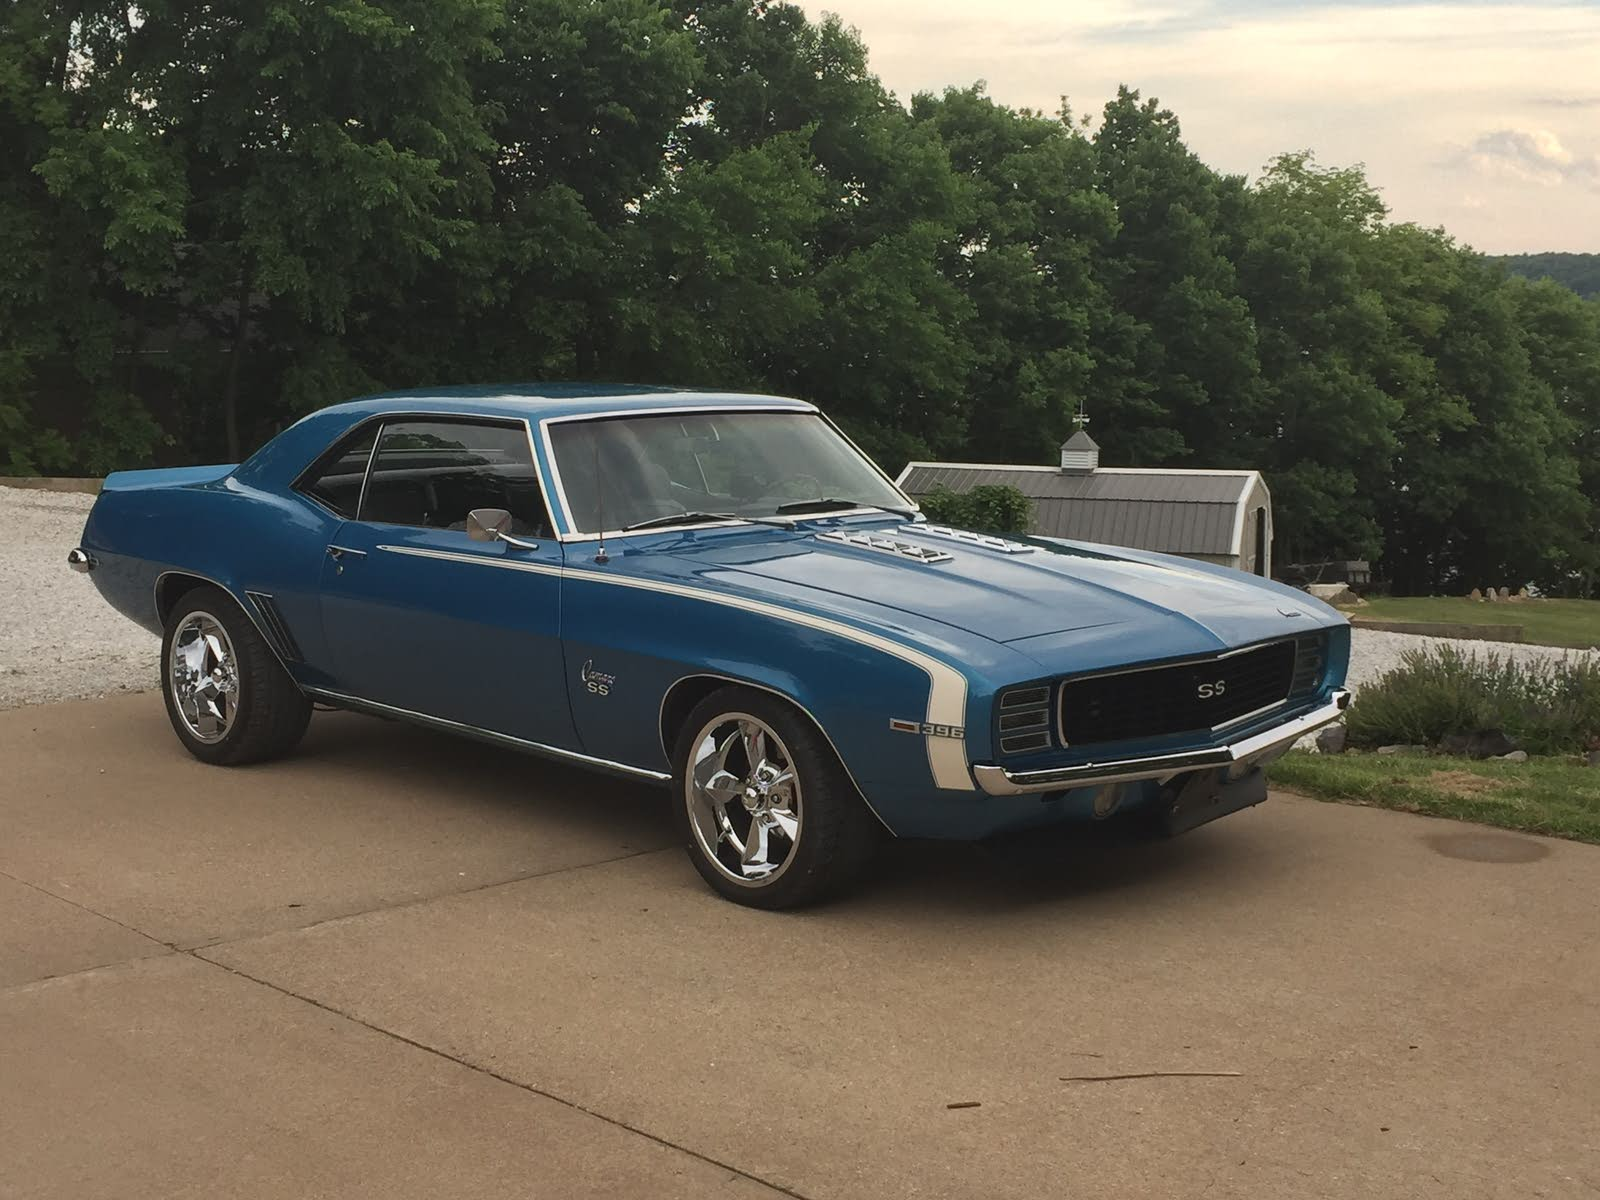 Chevrolet Camaro Questions - How much is a good 1969 Chevrolet